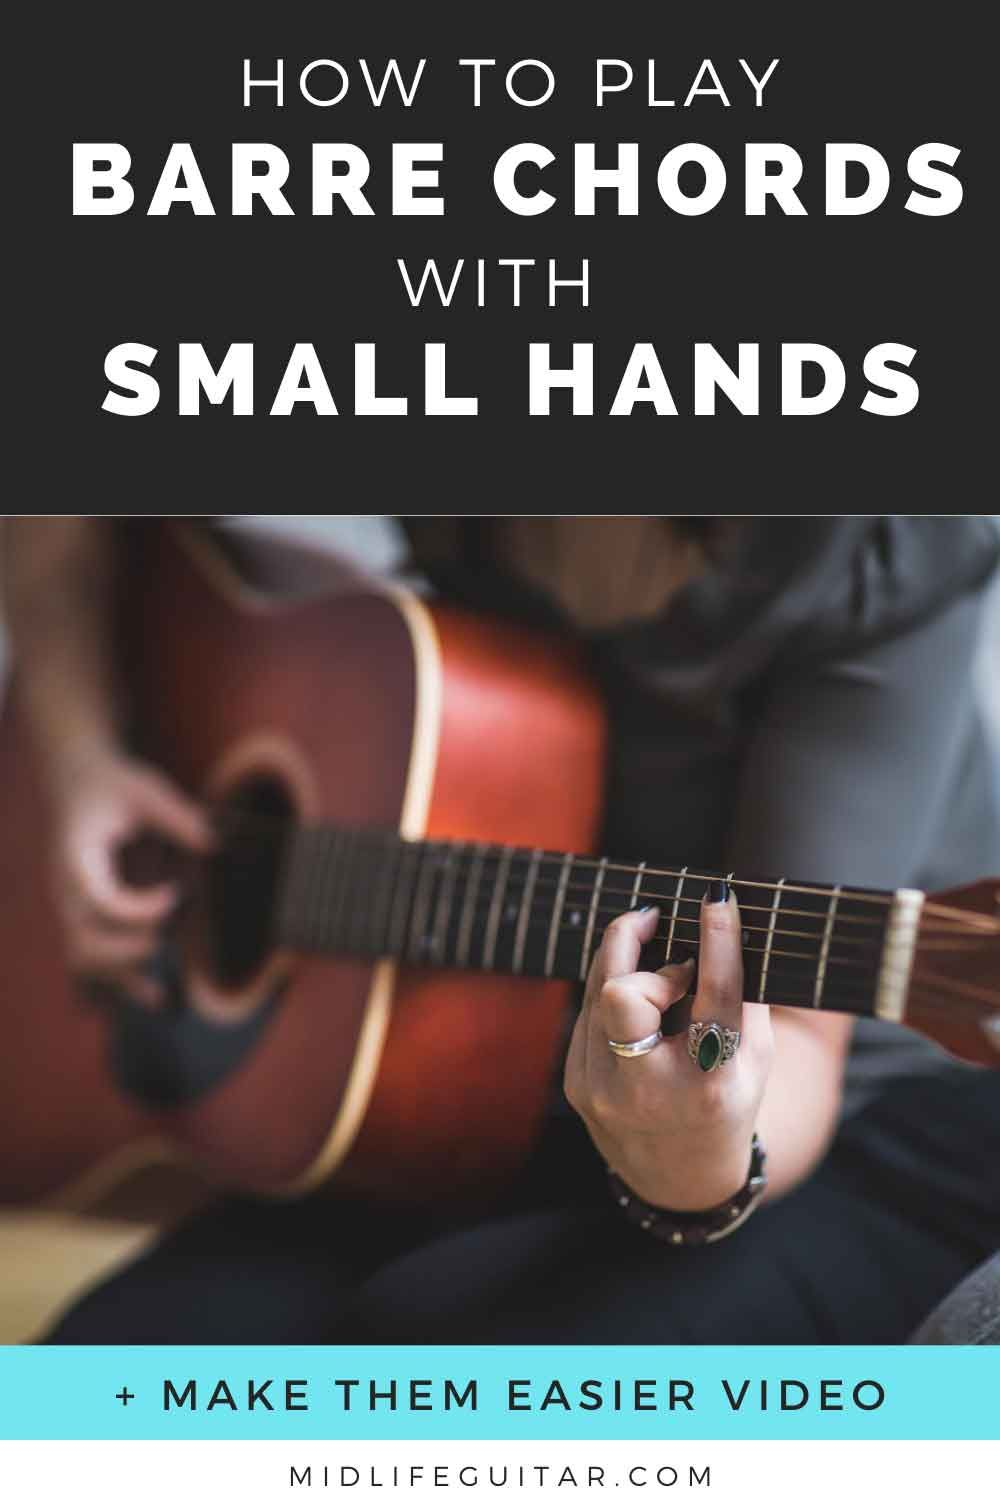 How To Play Barre Chords With Small Hands In 2020 Guitar Strumming Guitar Chords Beginner Learn Guitar